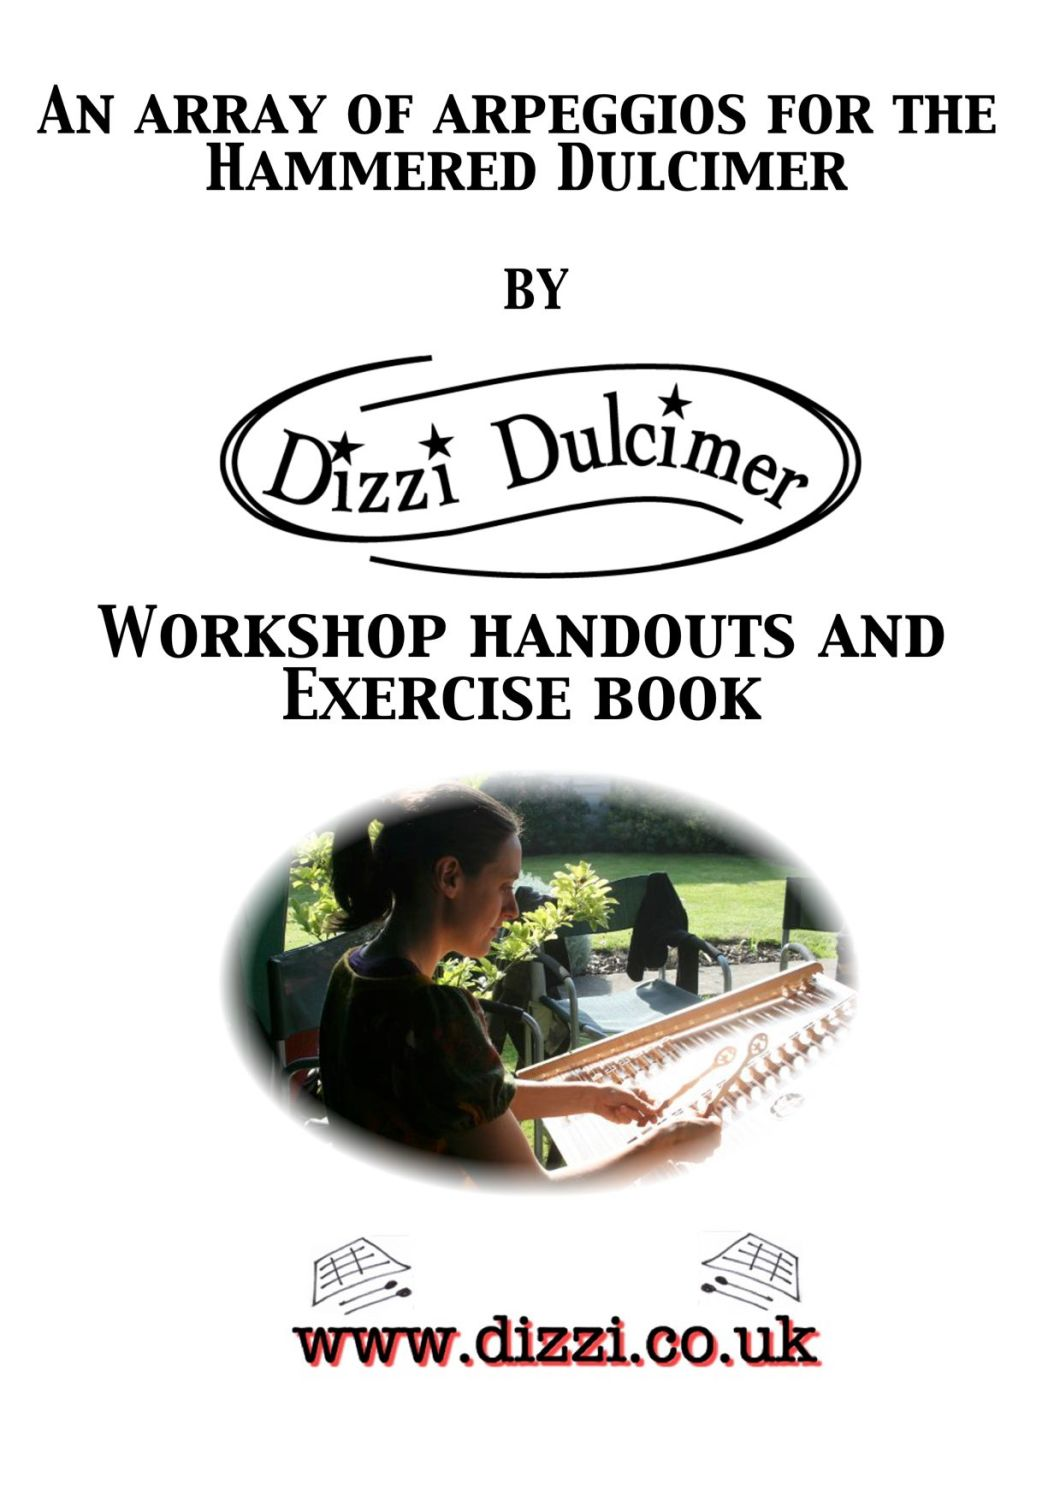 Discover the dulcimer the Dizzi Way An Array of Arpeggios Exercise book